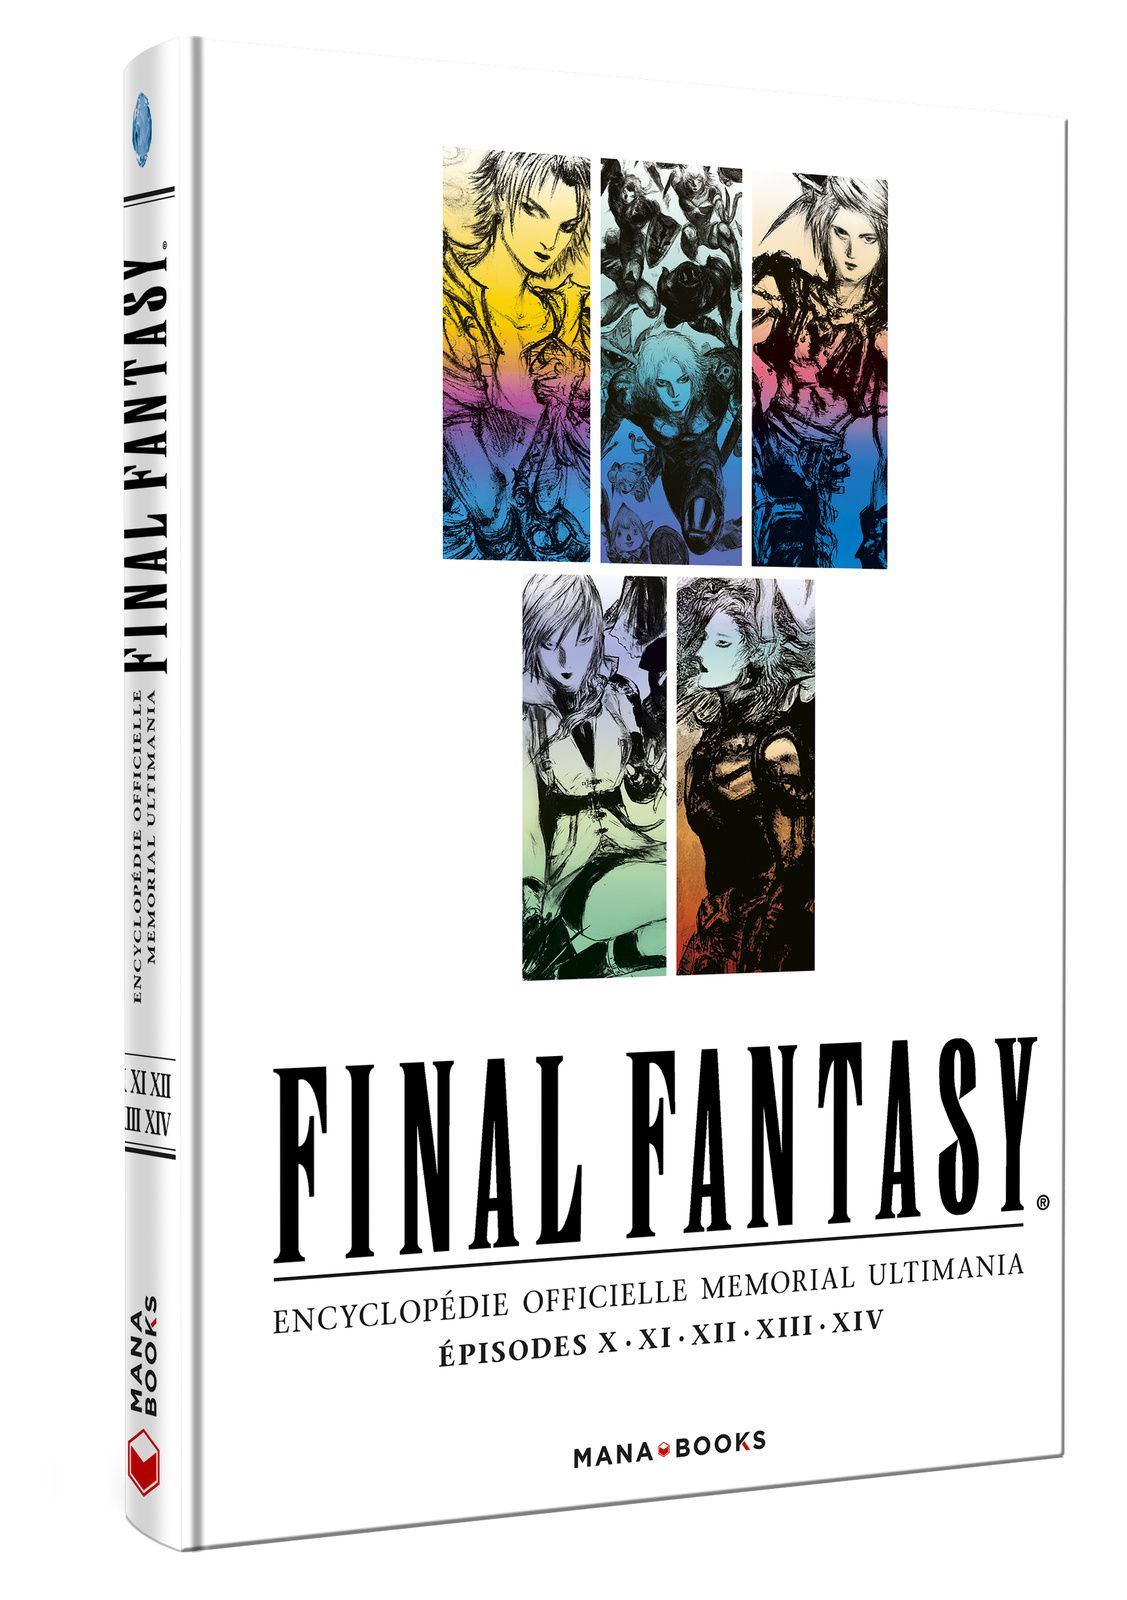 [REVUE LIVRE GAMING] FINAL FANTASY ENCYCLOPEDIE OFFICIELLE MEMORIAL ULTIMANIA EPISODES X - XI - XII - XIII - XIV aux éditions MANA BOOKS